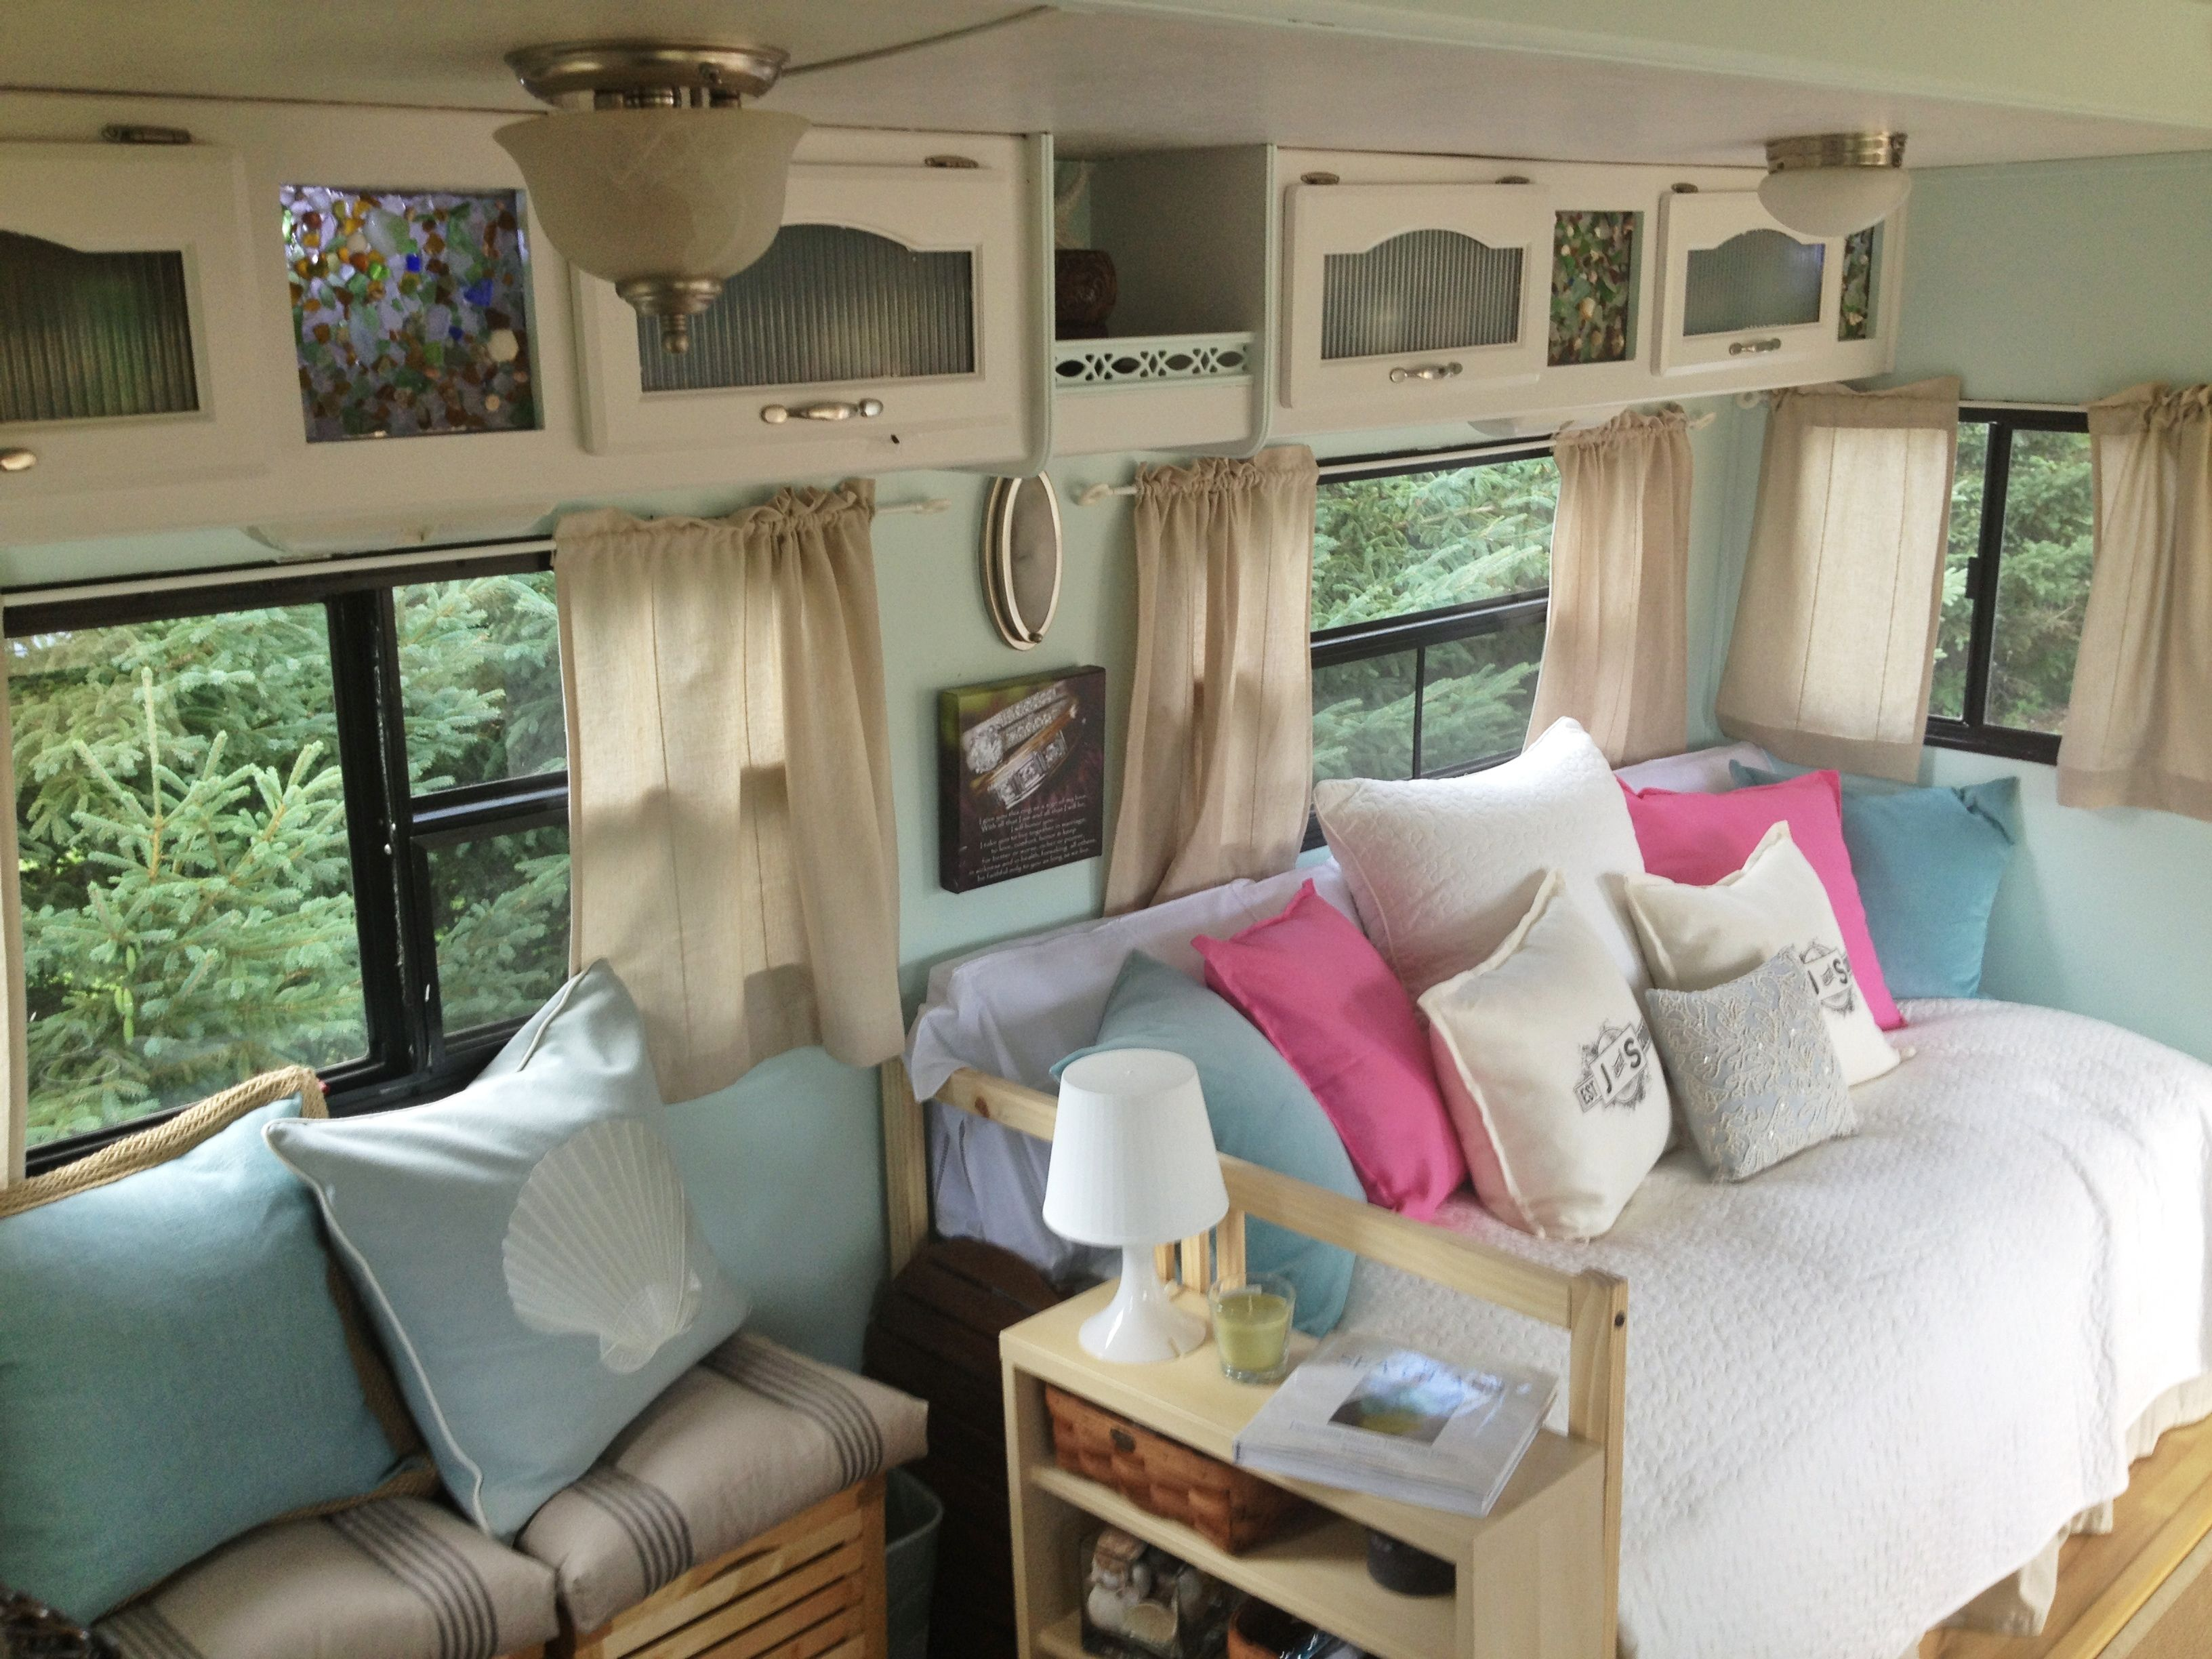 Diy rv interiors - I Absolutely Love This Remodel My Camper Will Look Like This